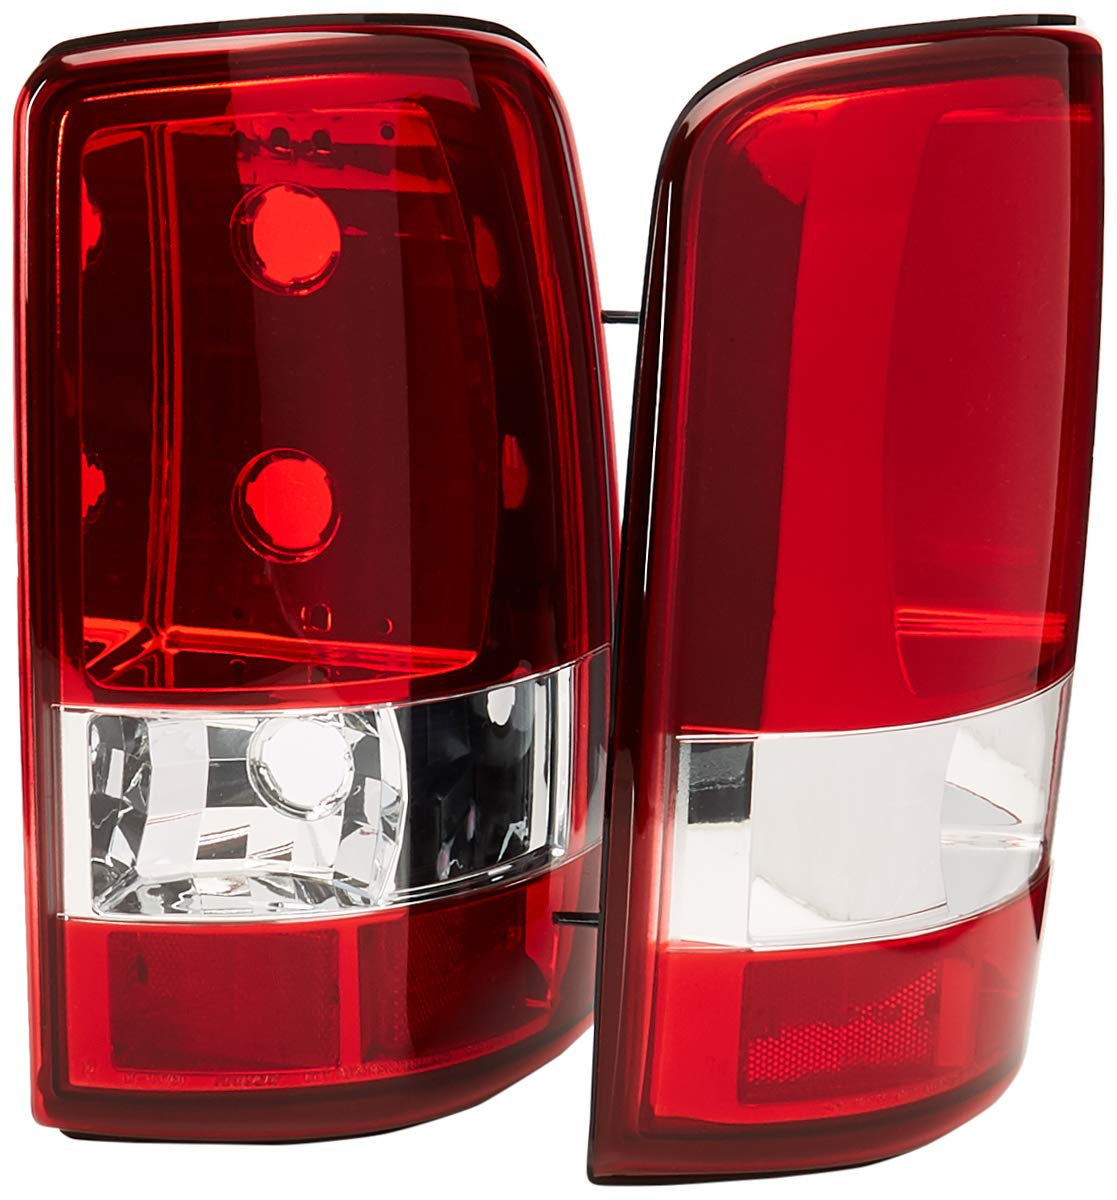 Spec-D Tuning LT-DEN00G2RPW-TM Gmc Yukon Denali//Chevy Tahoe Red Tail Lights